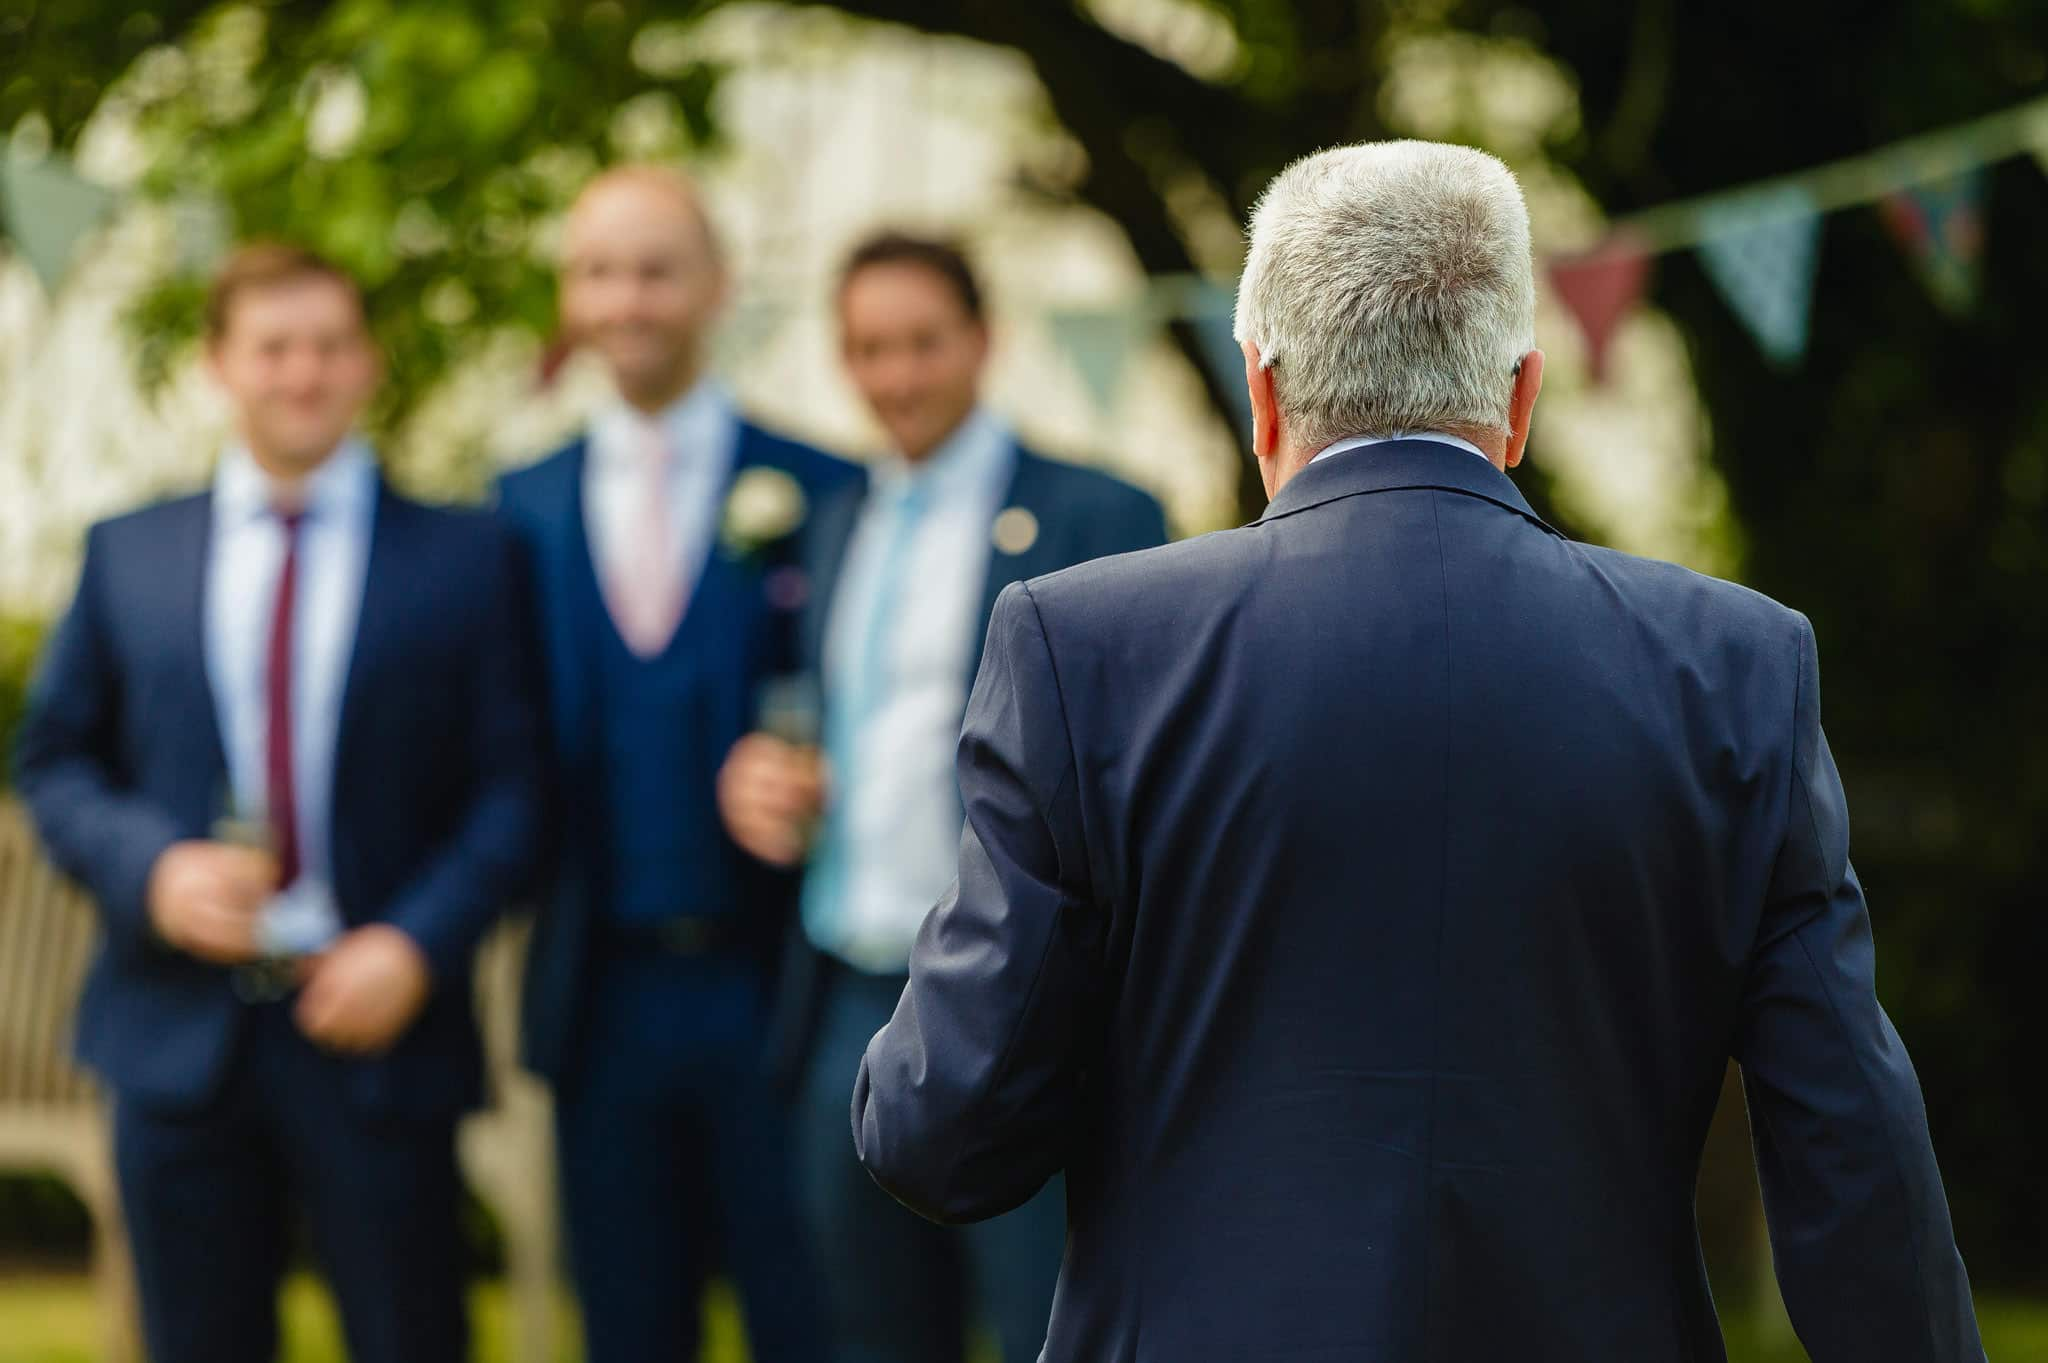 Wedding at Redhouse Barn in Stoke Prior, Worcestershire 124